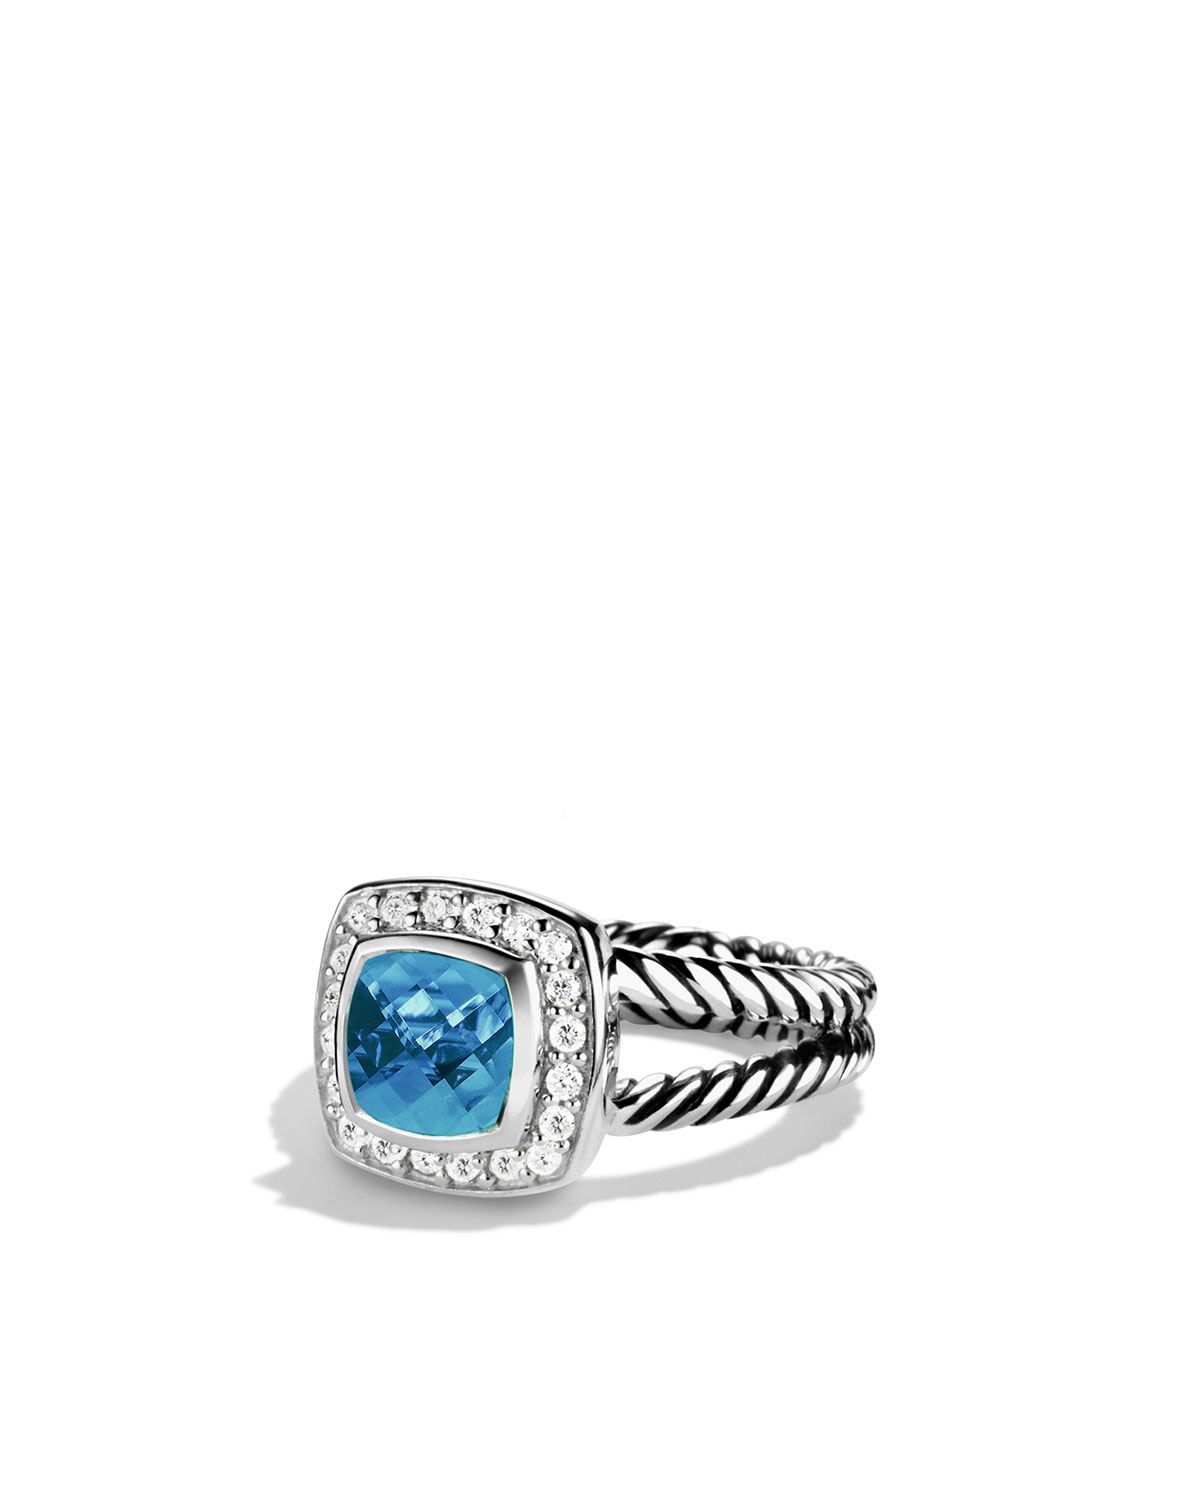 b87fd617d471 David Yurman Petite Albion Ring with Blue Topaz and Diamonds ...